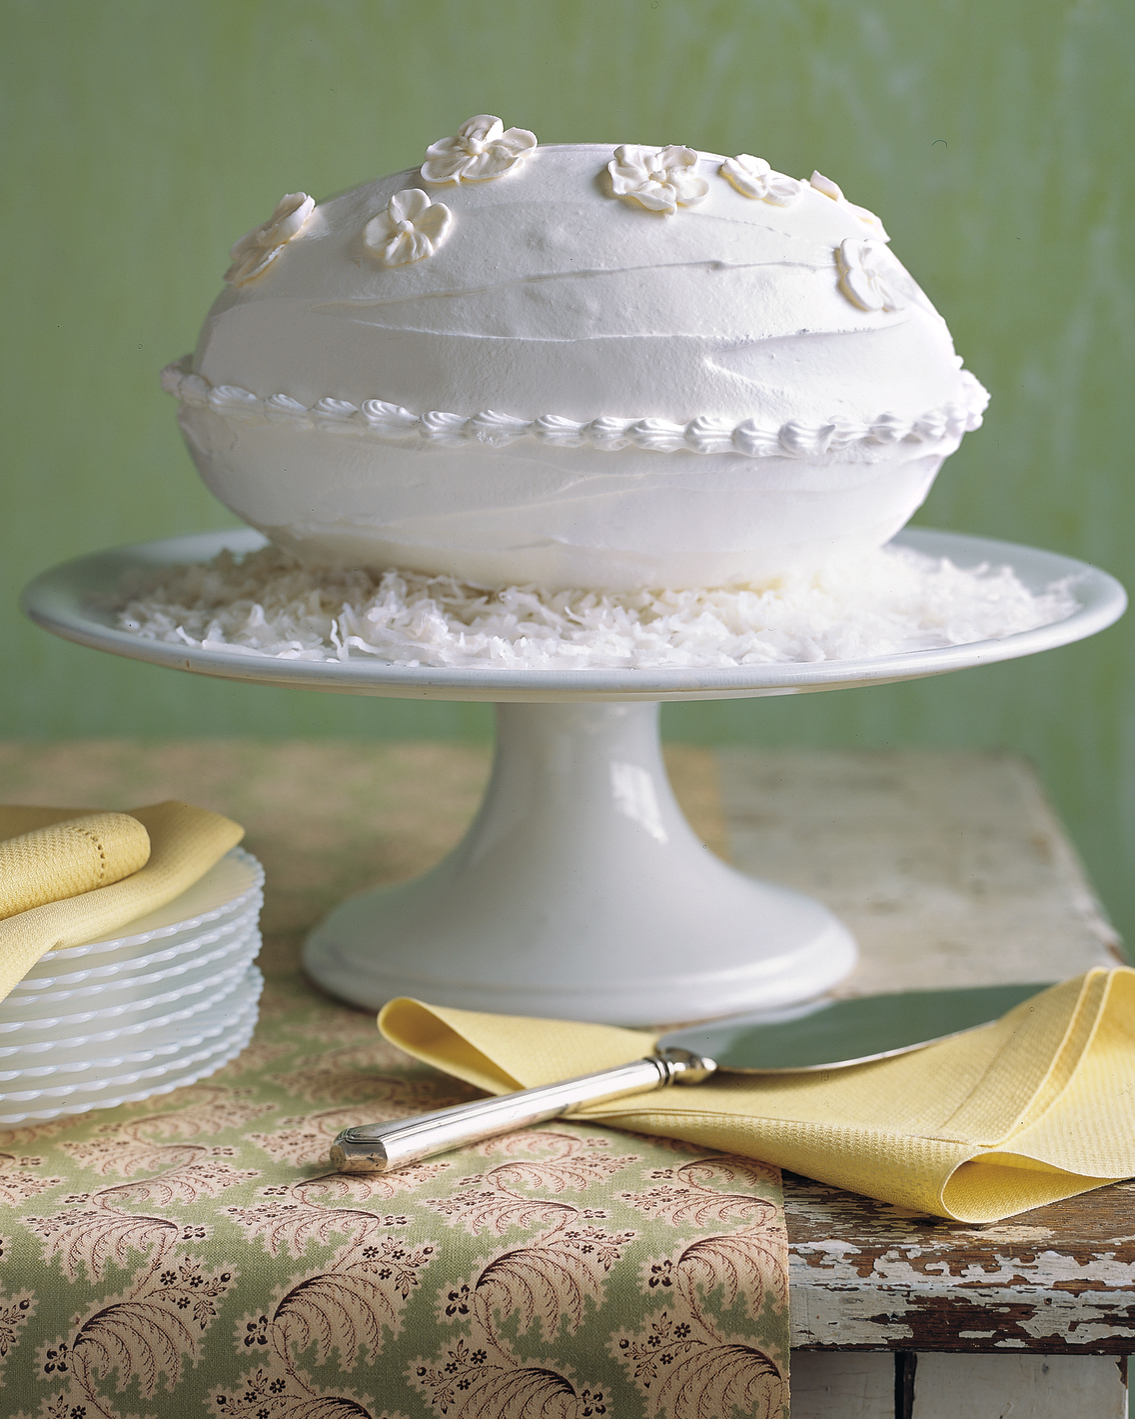 Coconut-Almond Egg-Shaped Cake